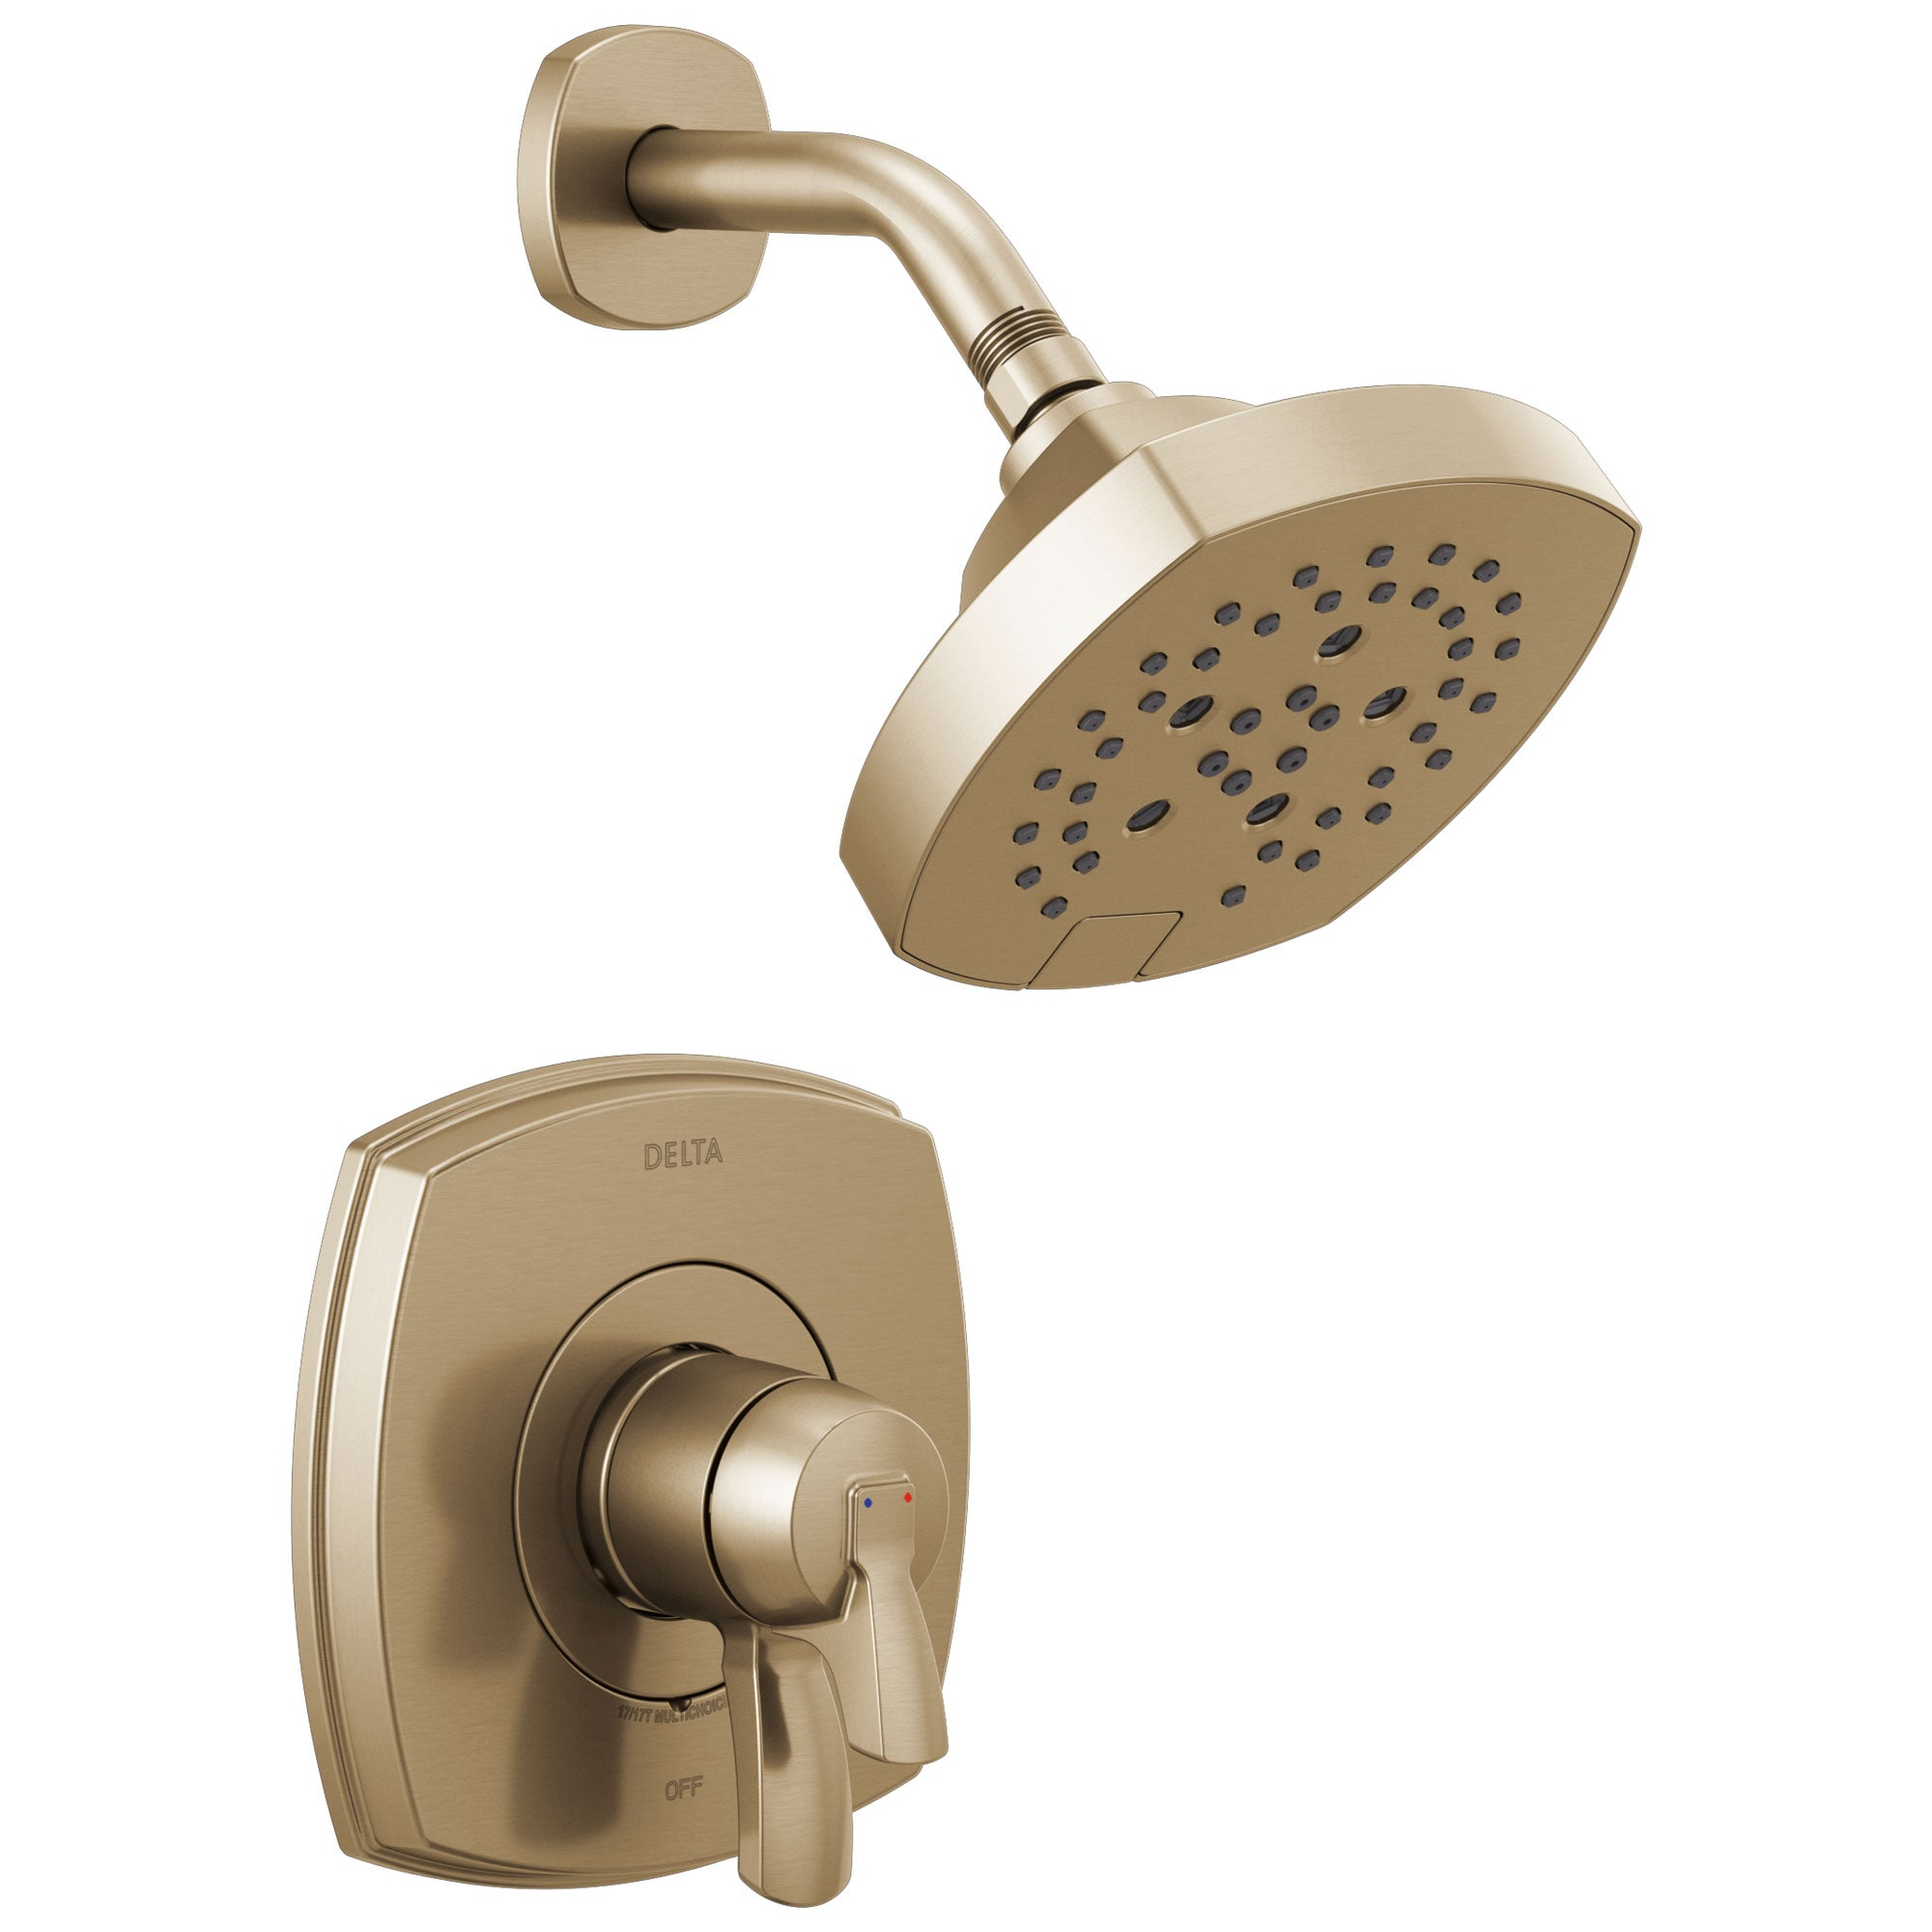 Delta Stryke Champagne Bronze Finish Monitor 17 Series Shower Only Faucet Includes Handles, Cartridge, and Valve with Stops D3366V